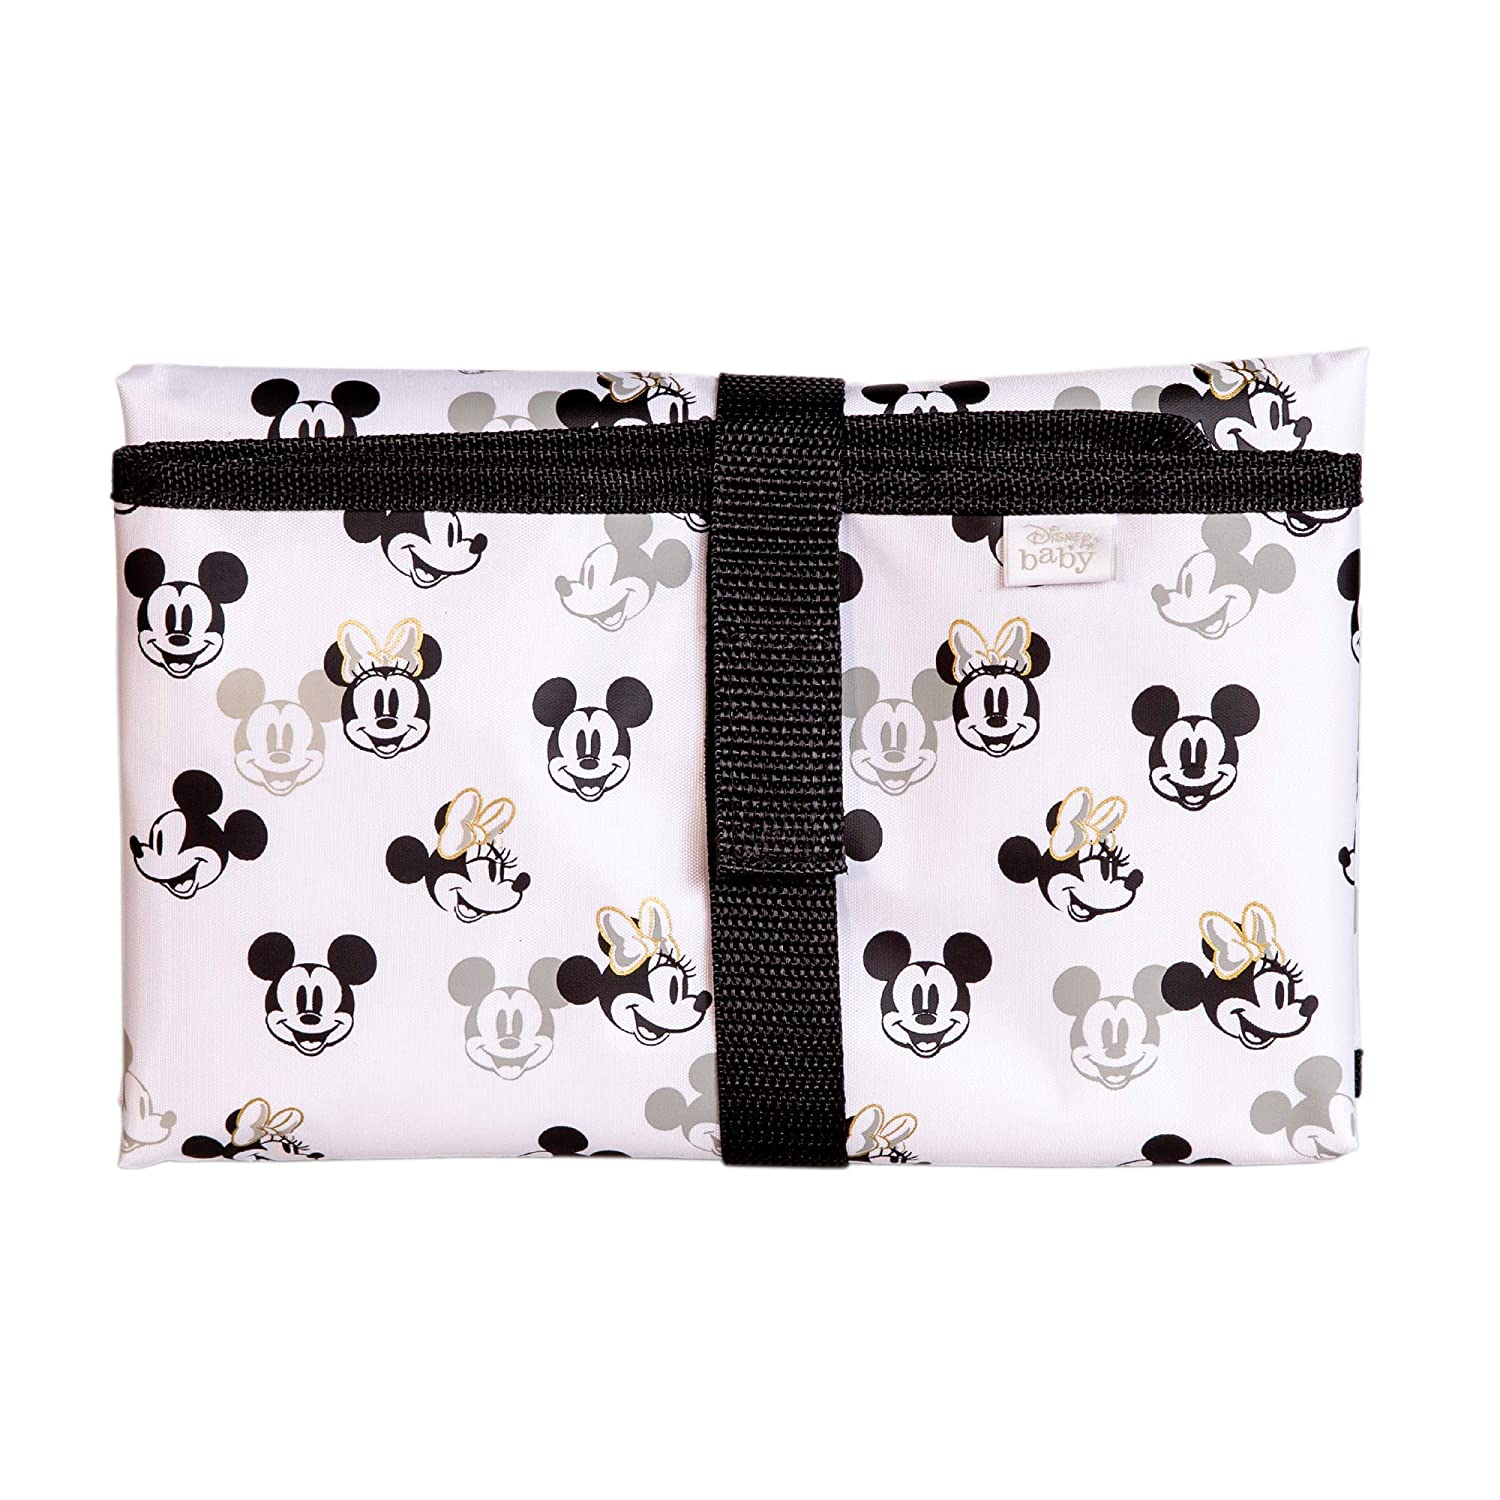 Disney Baby by J.L. Childress Full Body Portable Changing Pad for Baby, Mickey Minnie Ivory